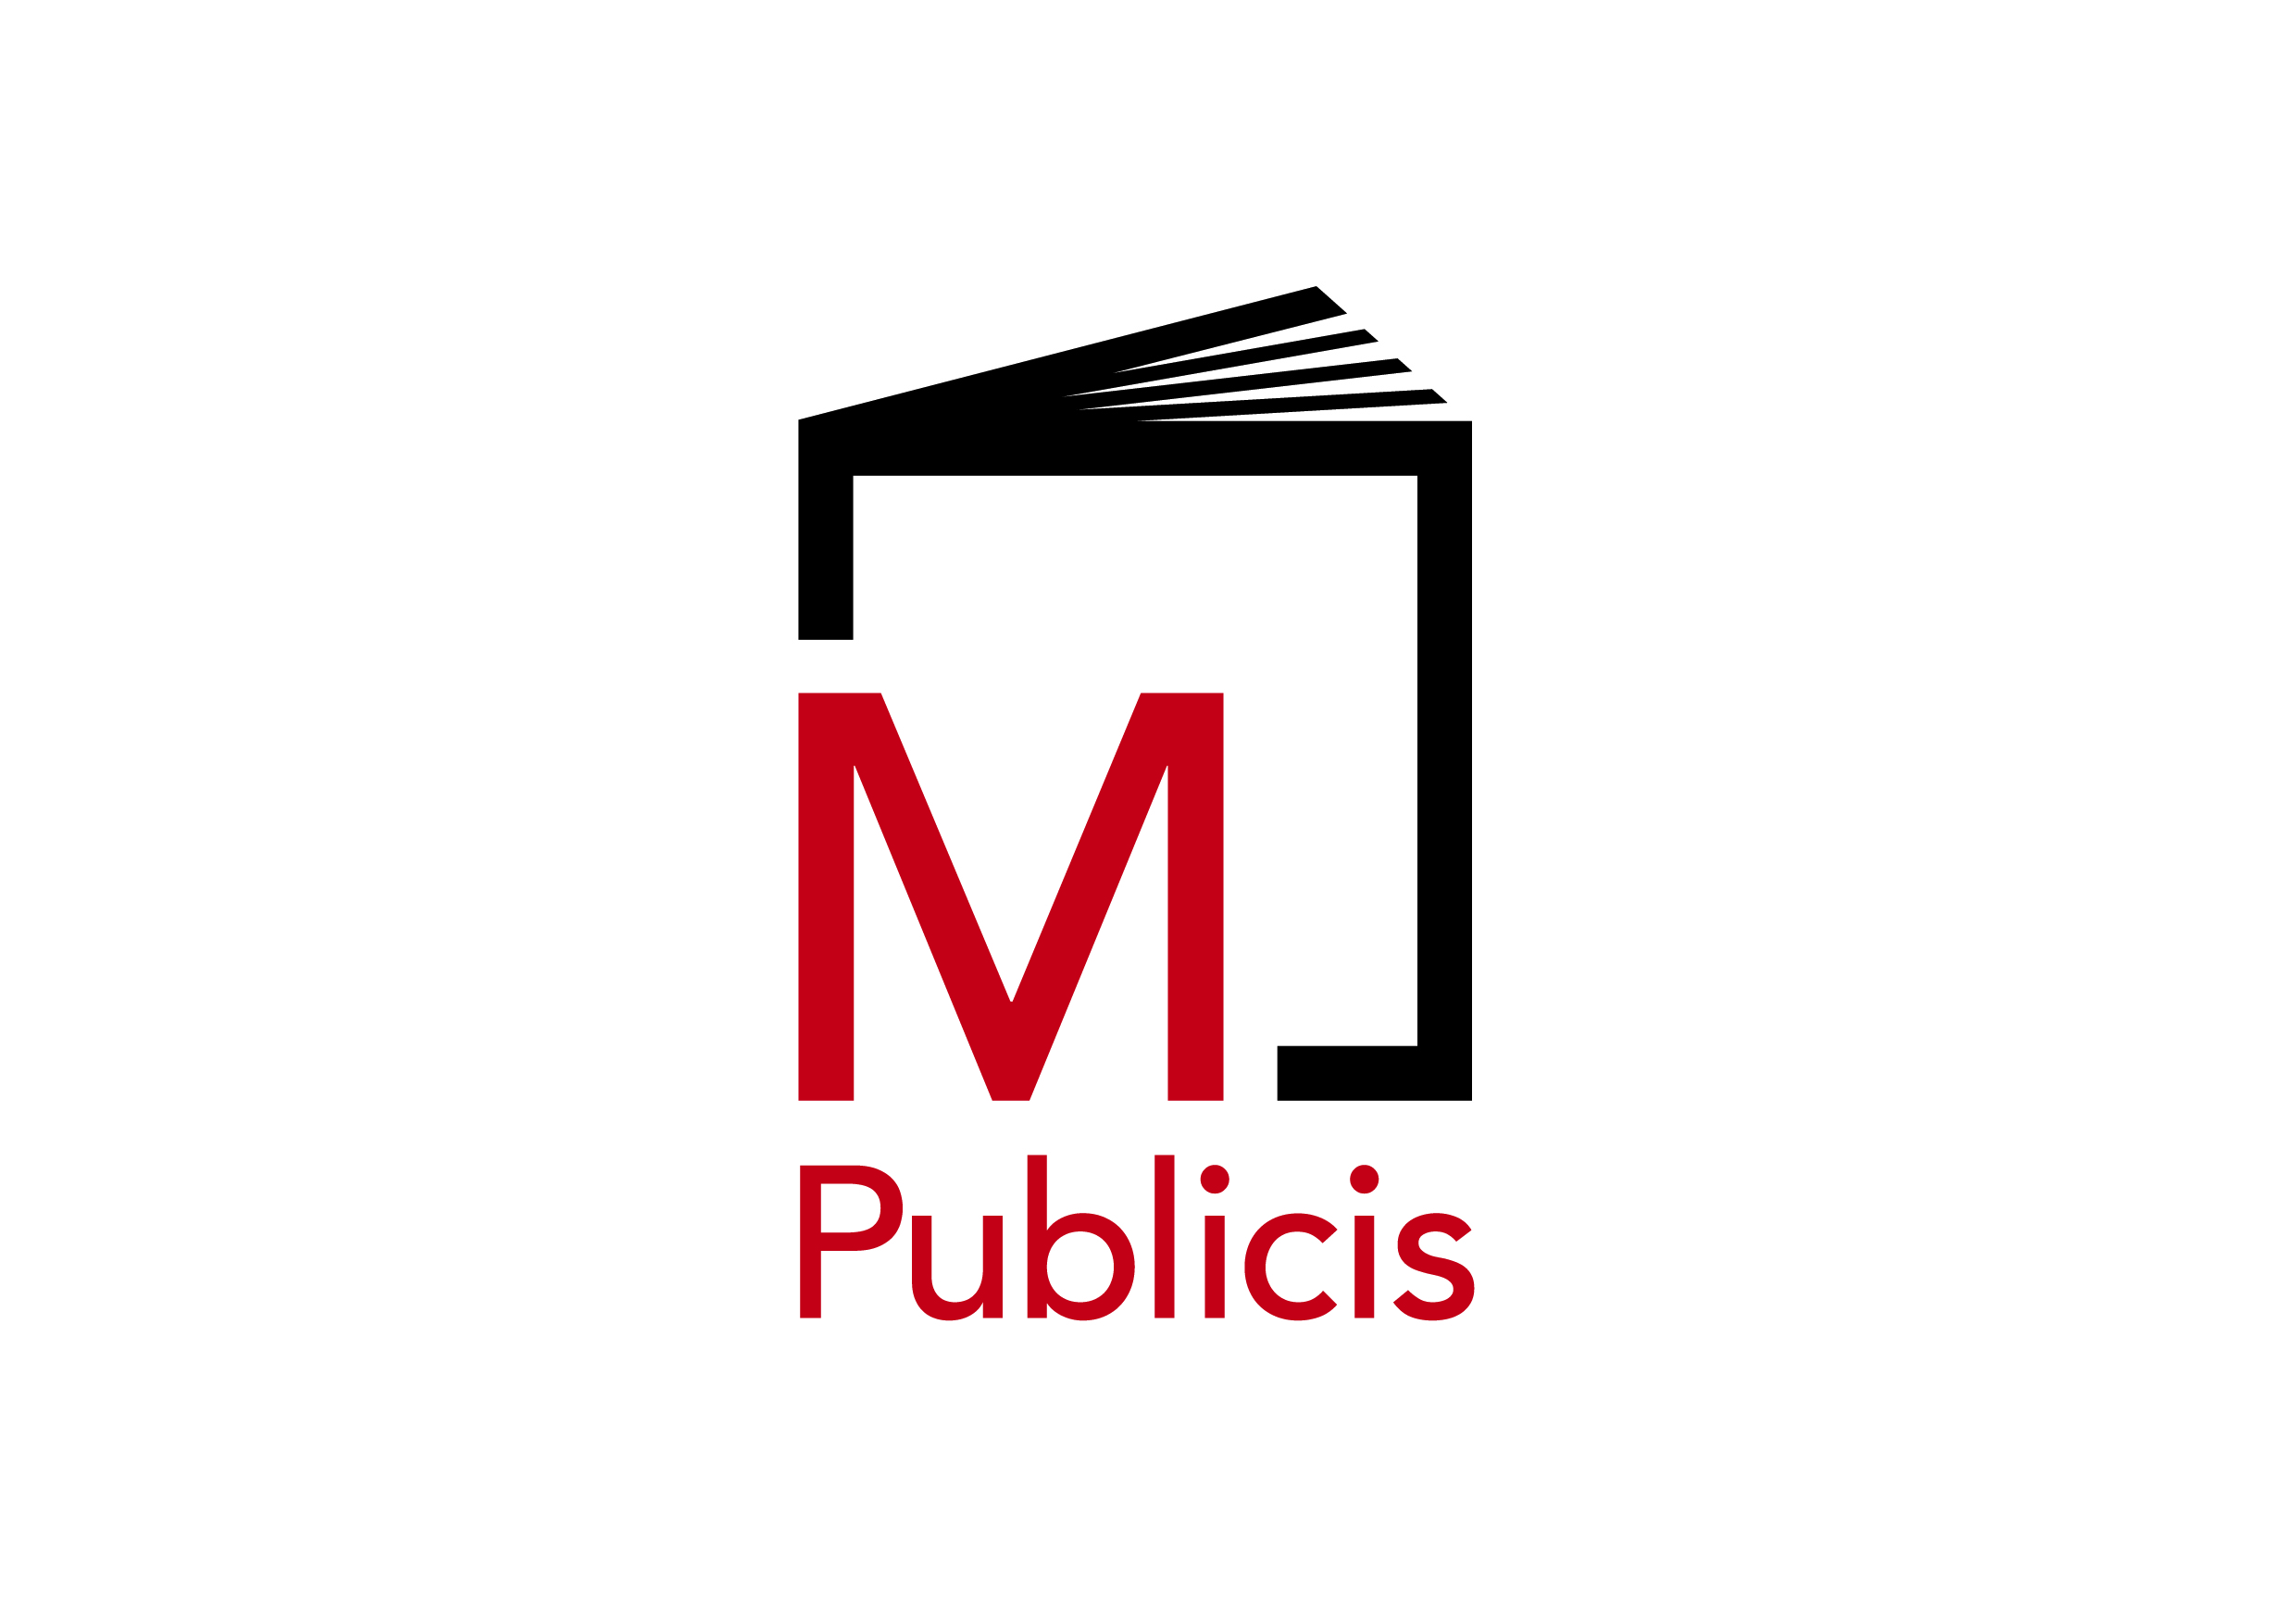 Merlijn Olnon Publicis